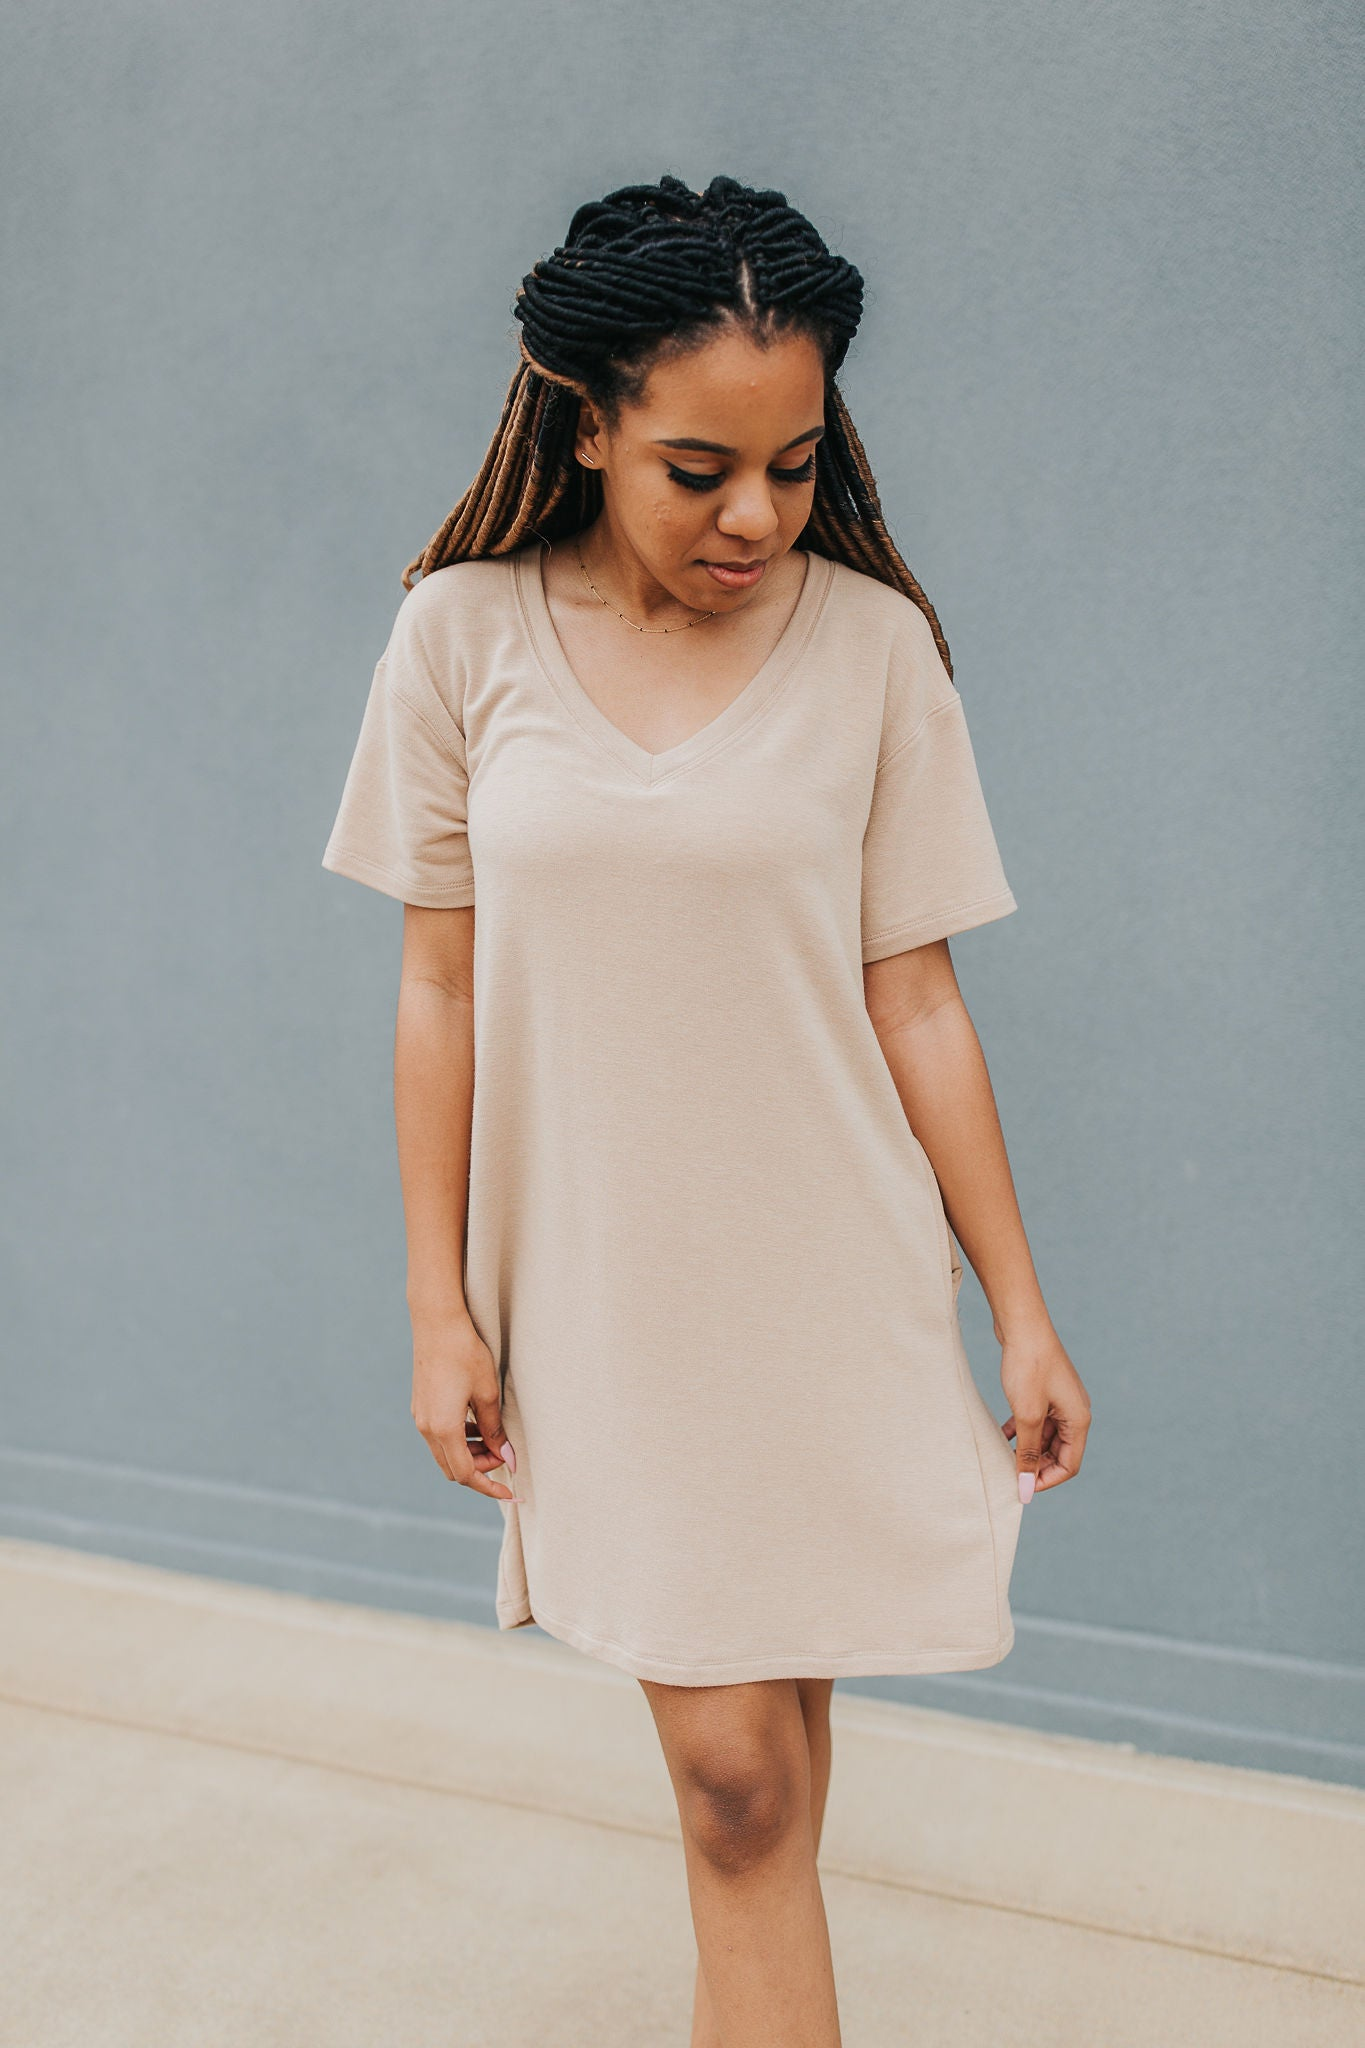 The Weekend Getaway Dress - Sand